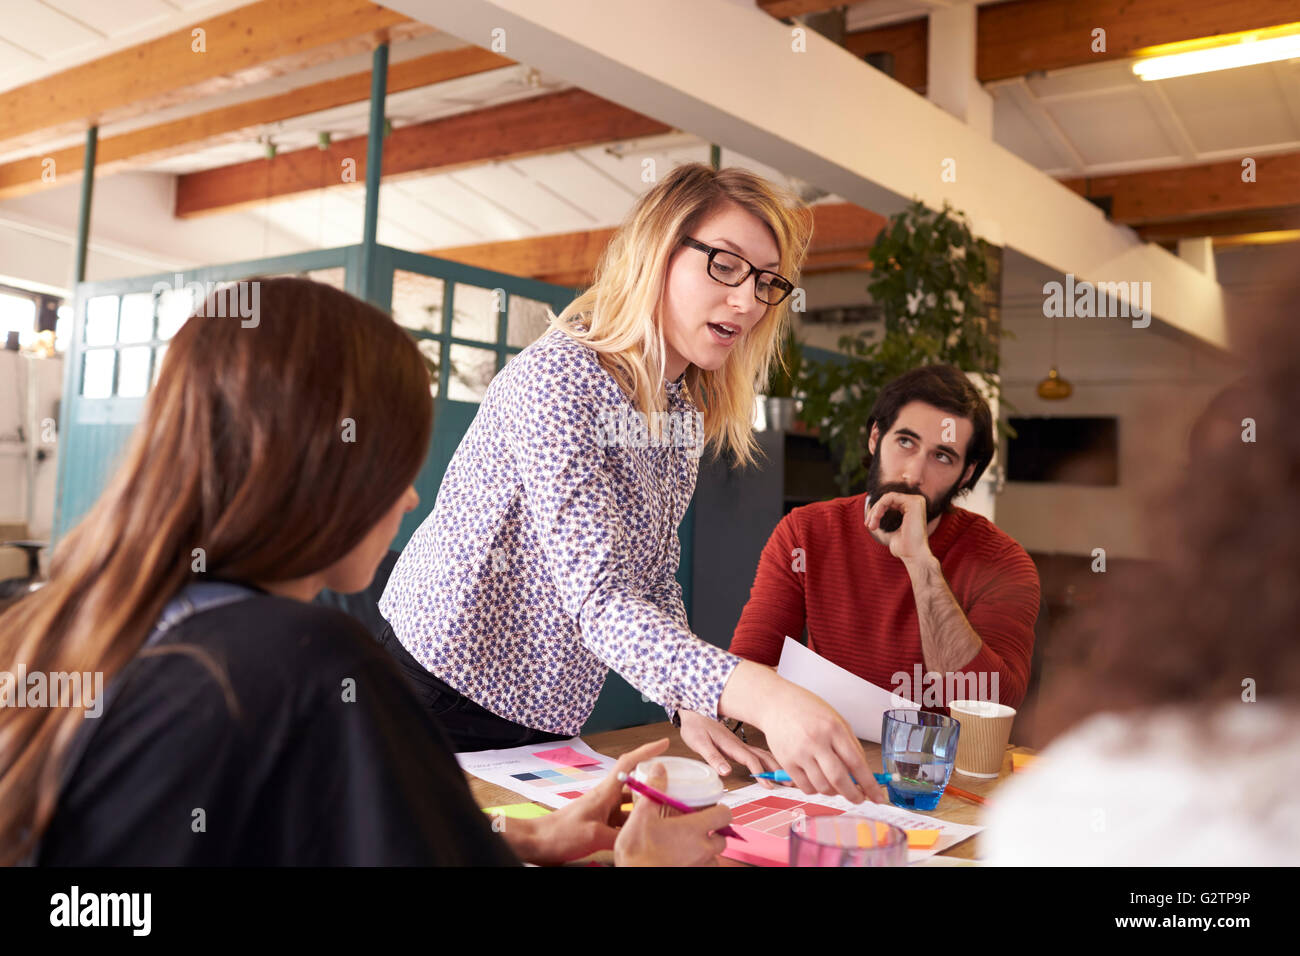 Female Manager Leads Brainstorming Meeting In Design Office - Stock Image